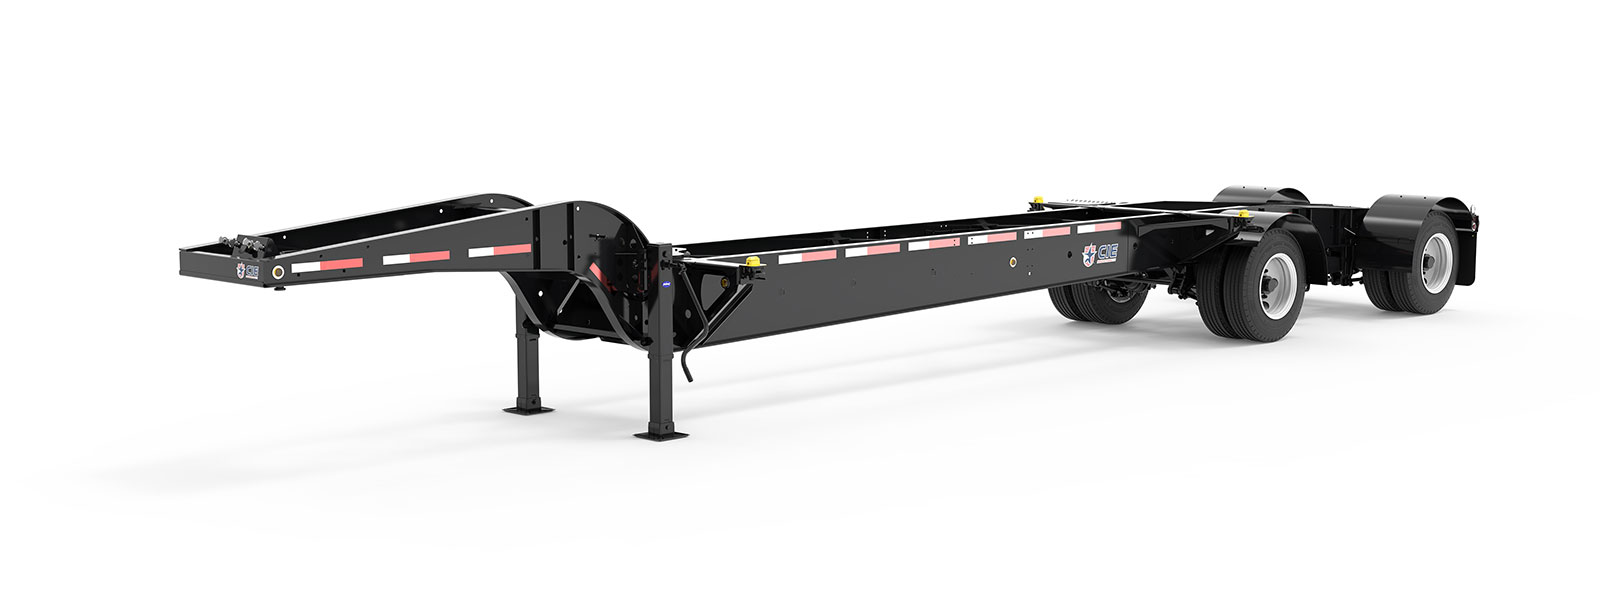 43' Drop Frame Tandem Tank Container Chassis Literature Angle View Final